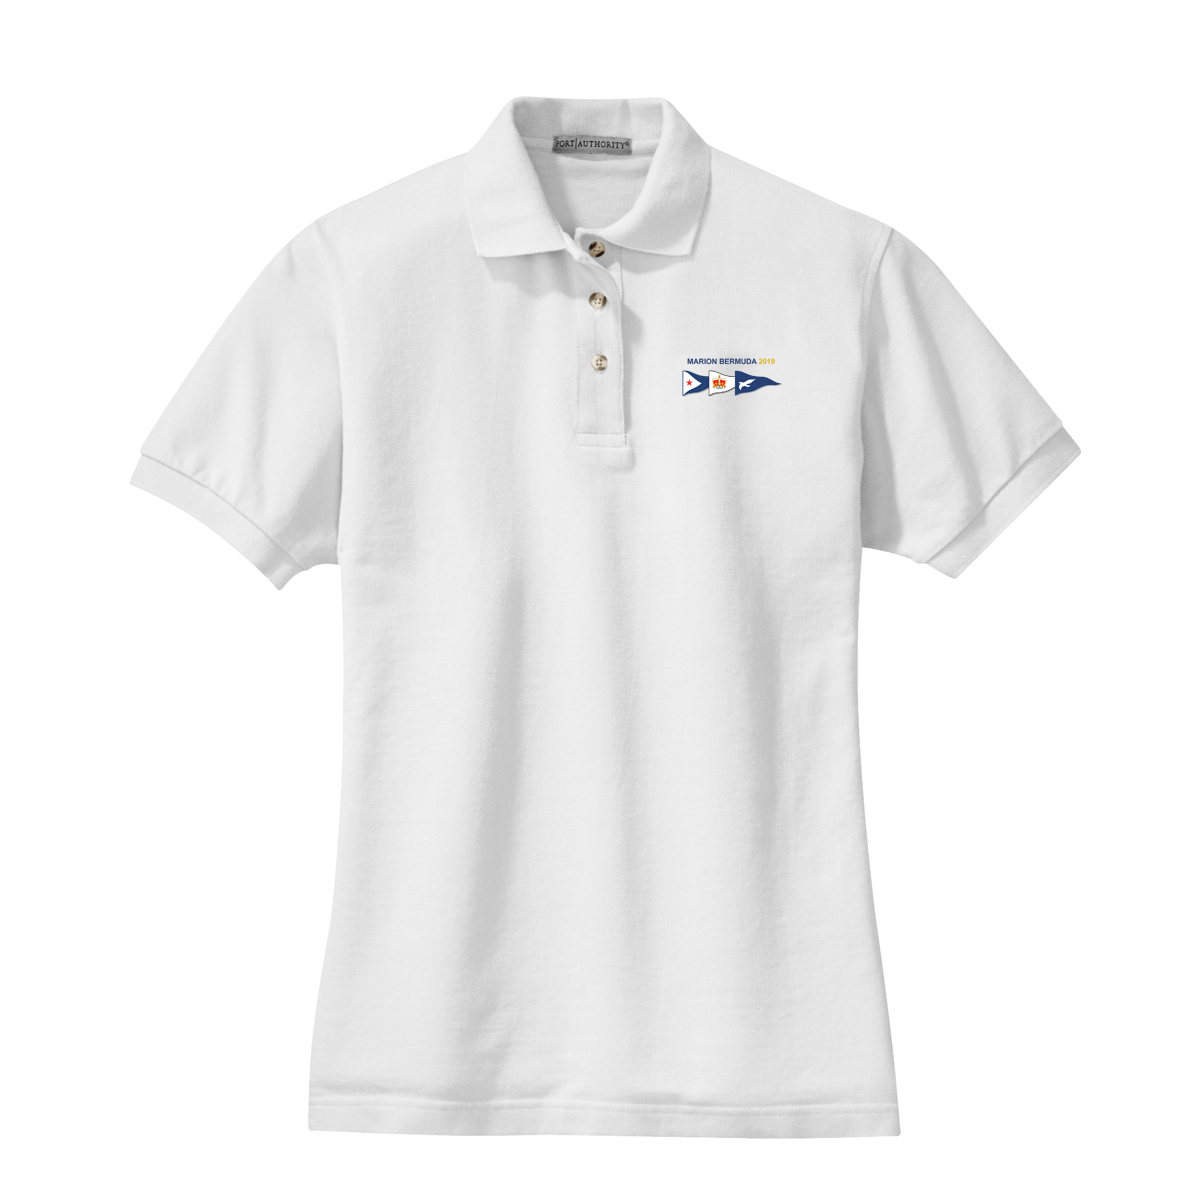 Marion Bermuda Race 2019 Women's Cotton Polo